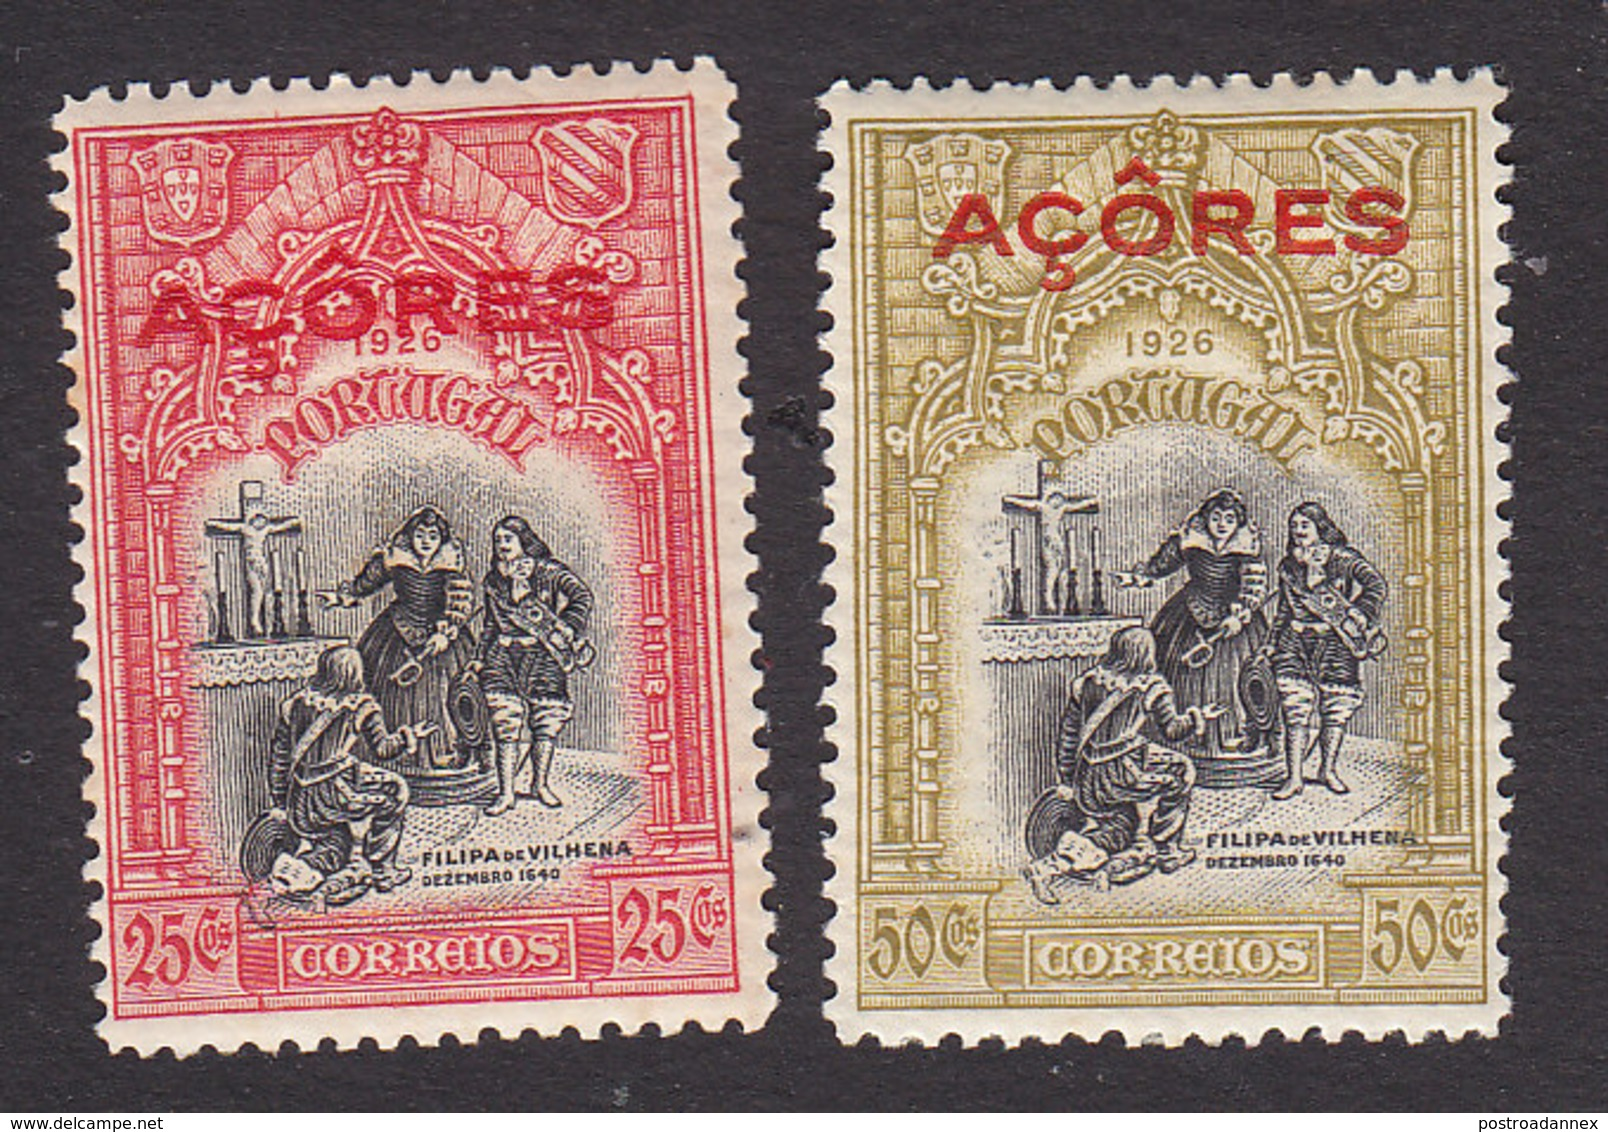 Azores, Scott #265, 268, Mint Hinged, First Independence Overprinted, Issued 1926 - Açores